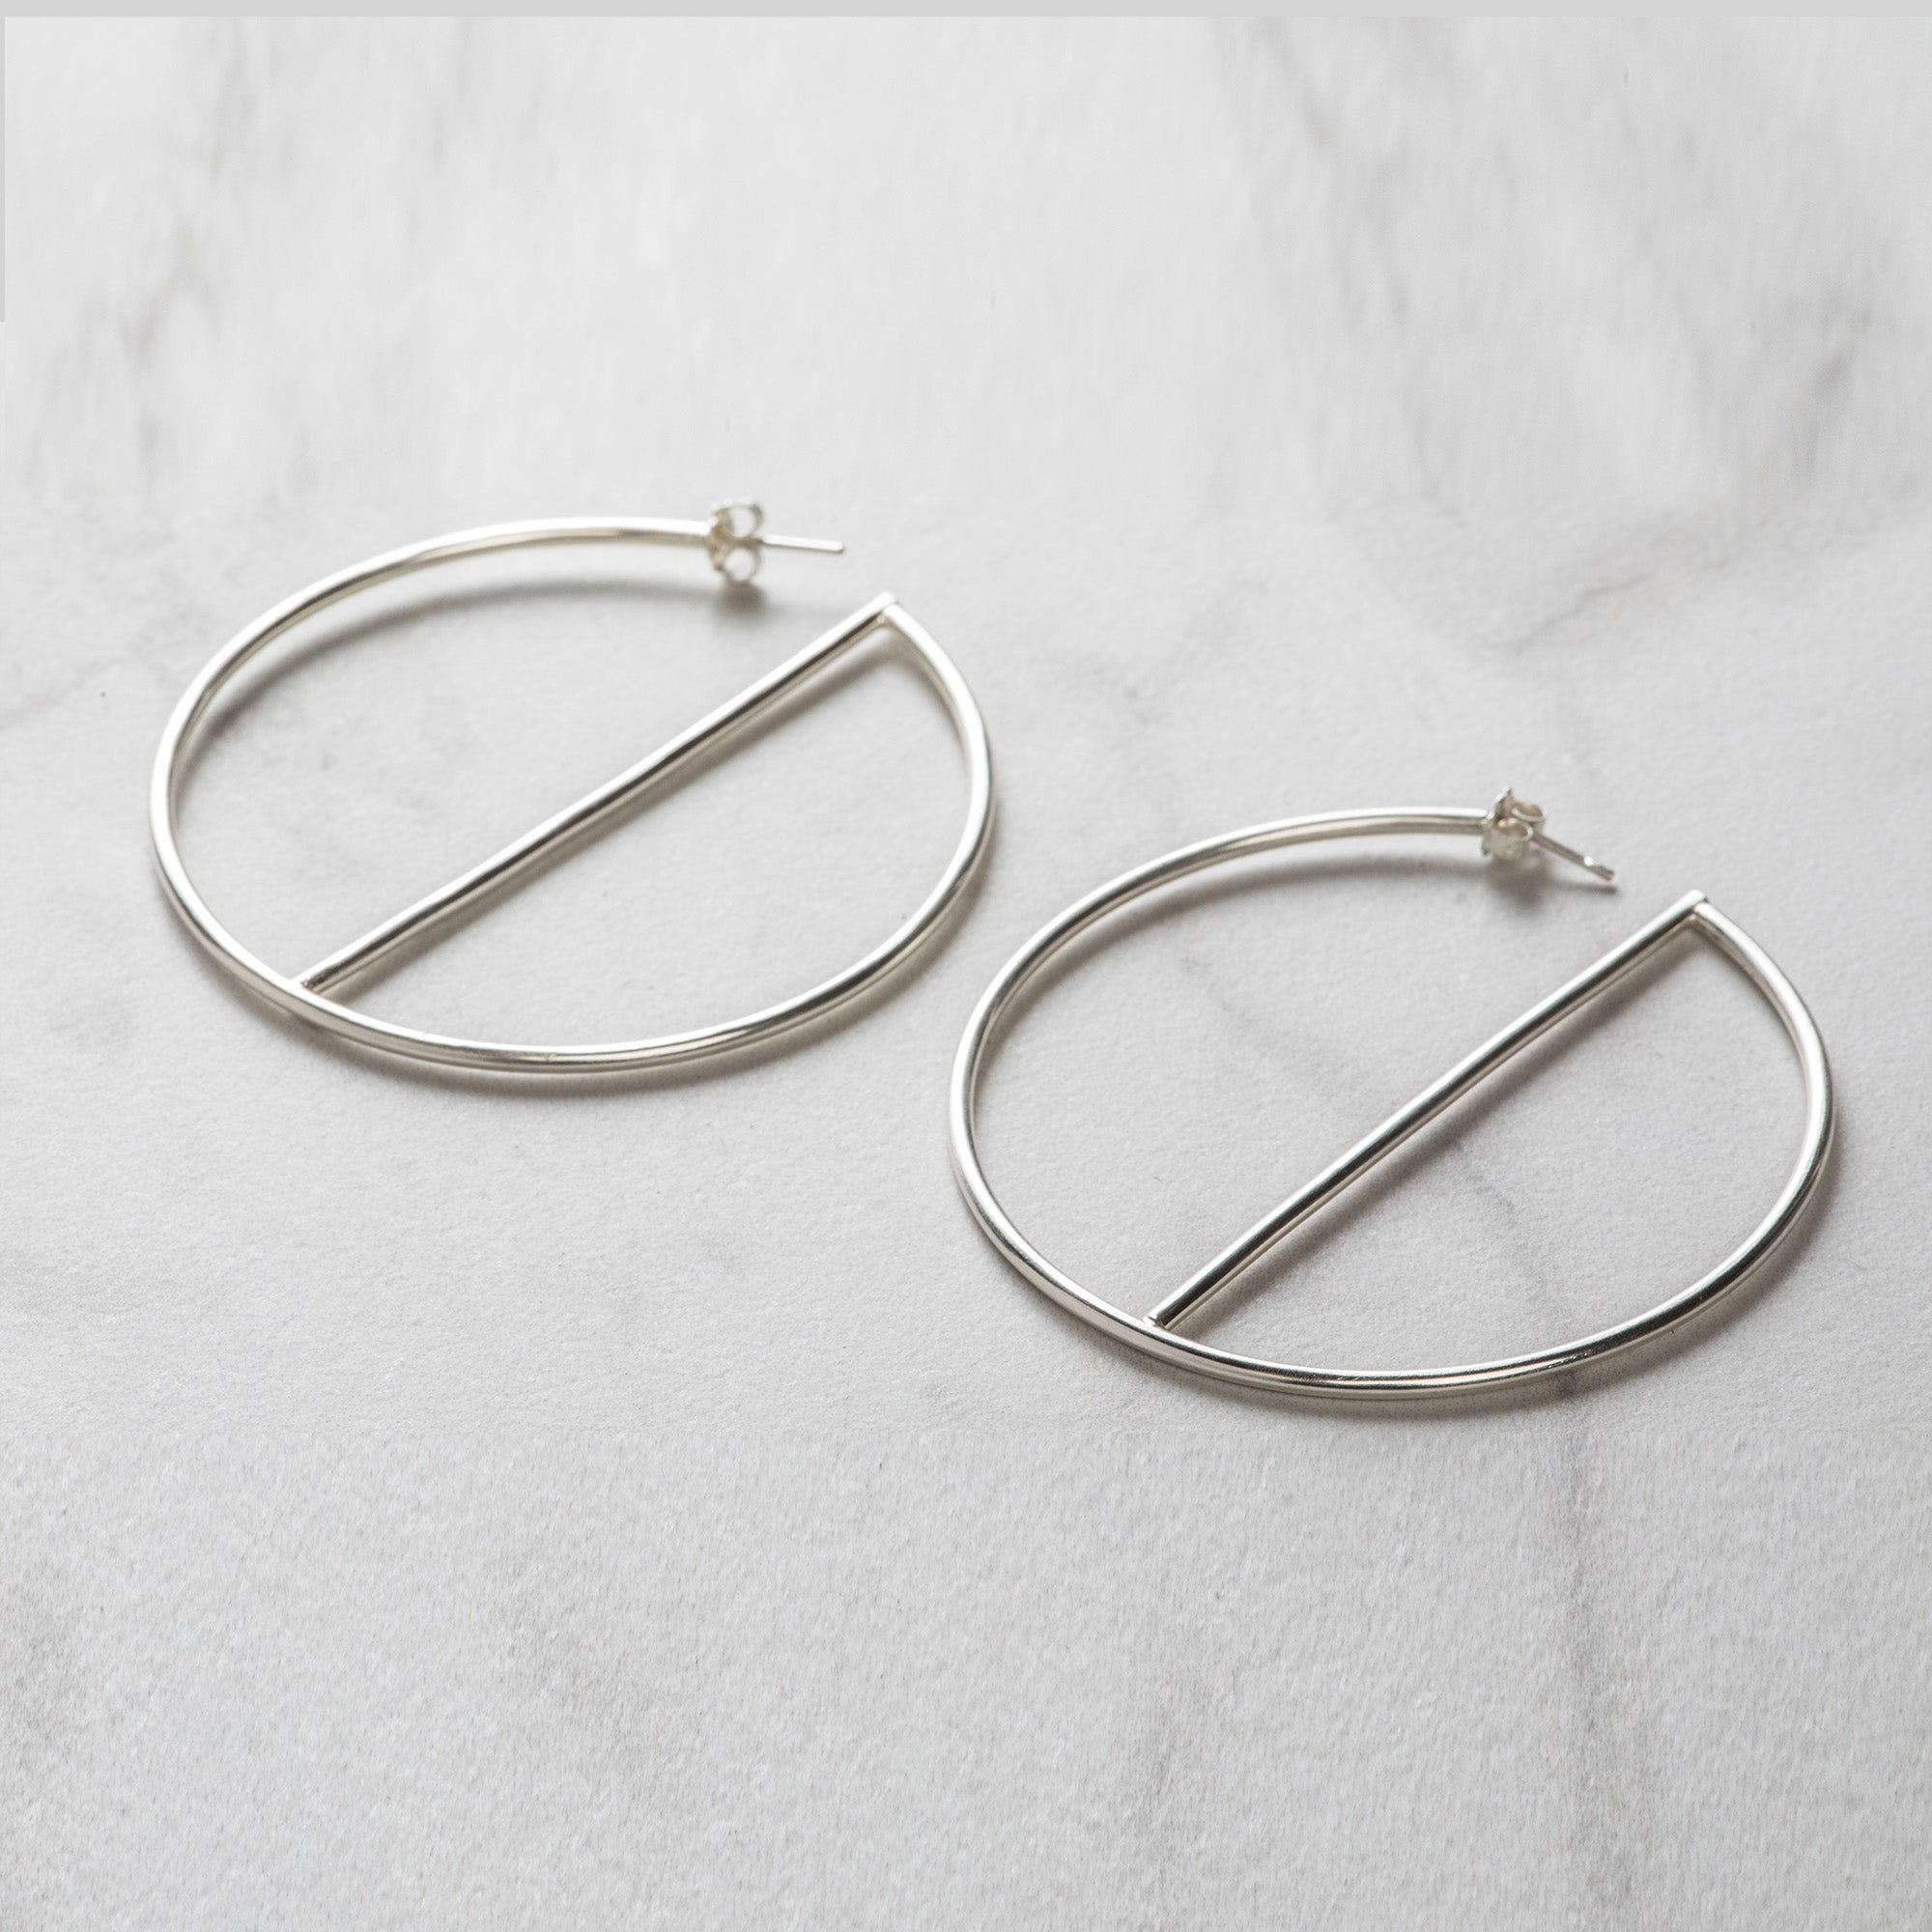 Glam Hoop Earrings, Gold or Silver